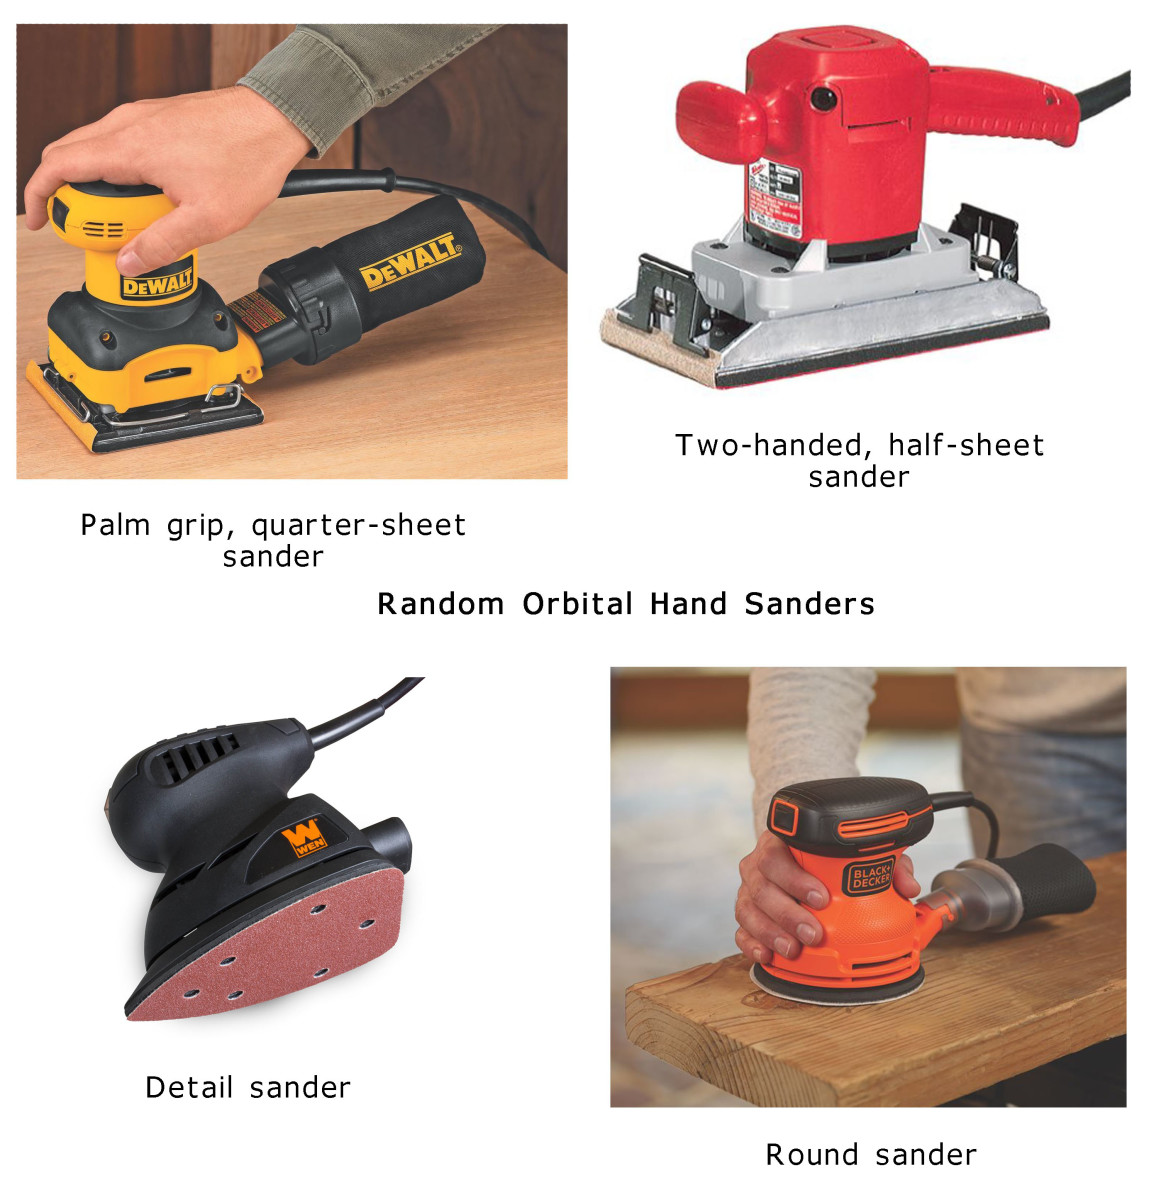 Kinds of random orbital handheld sanders